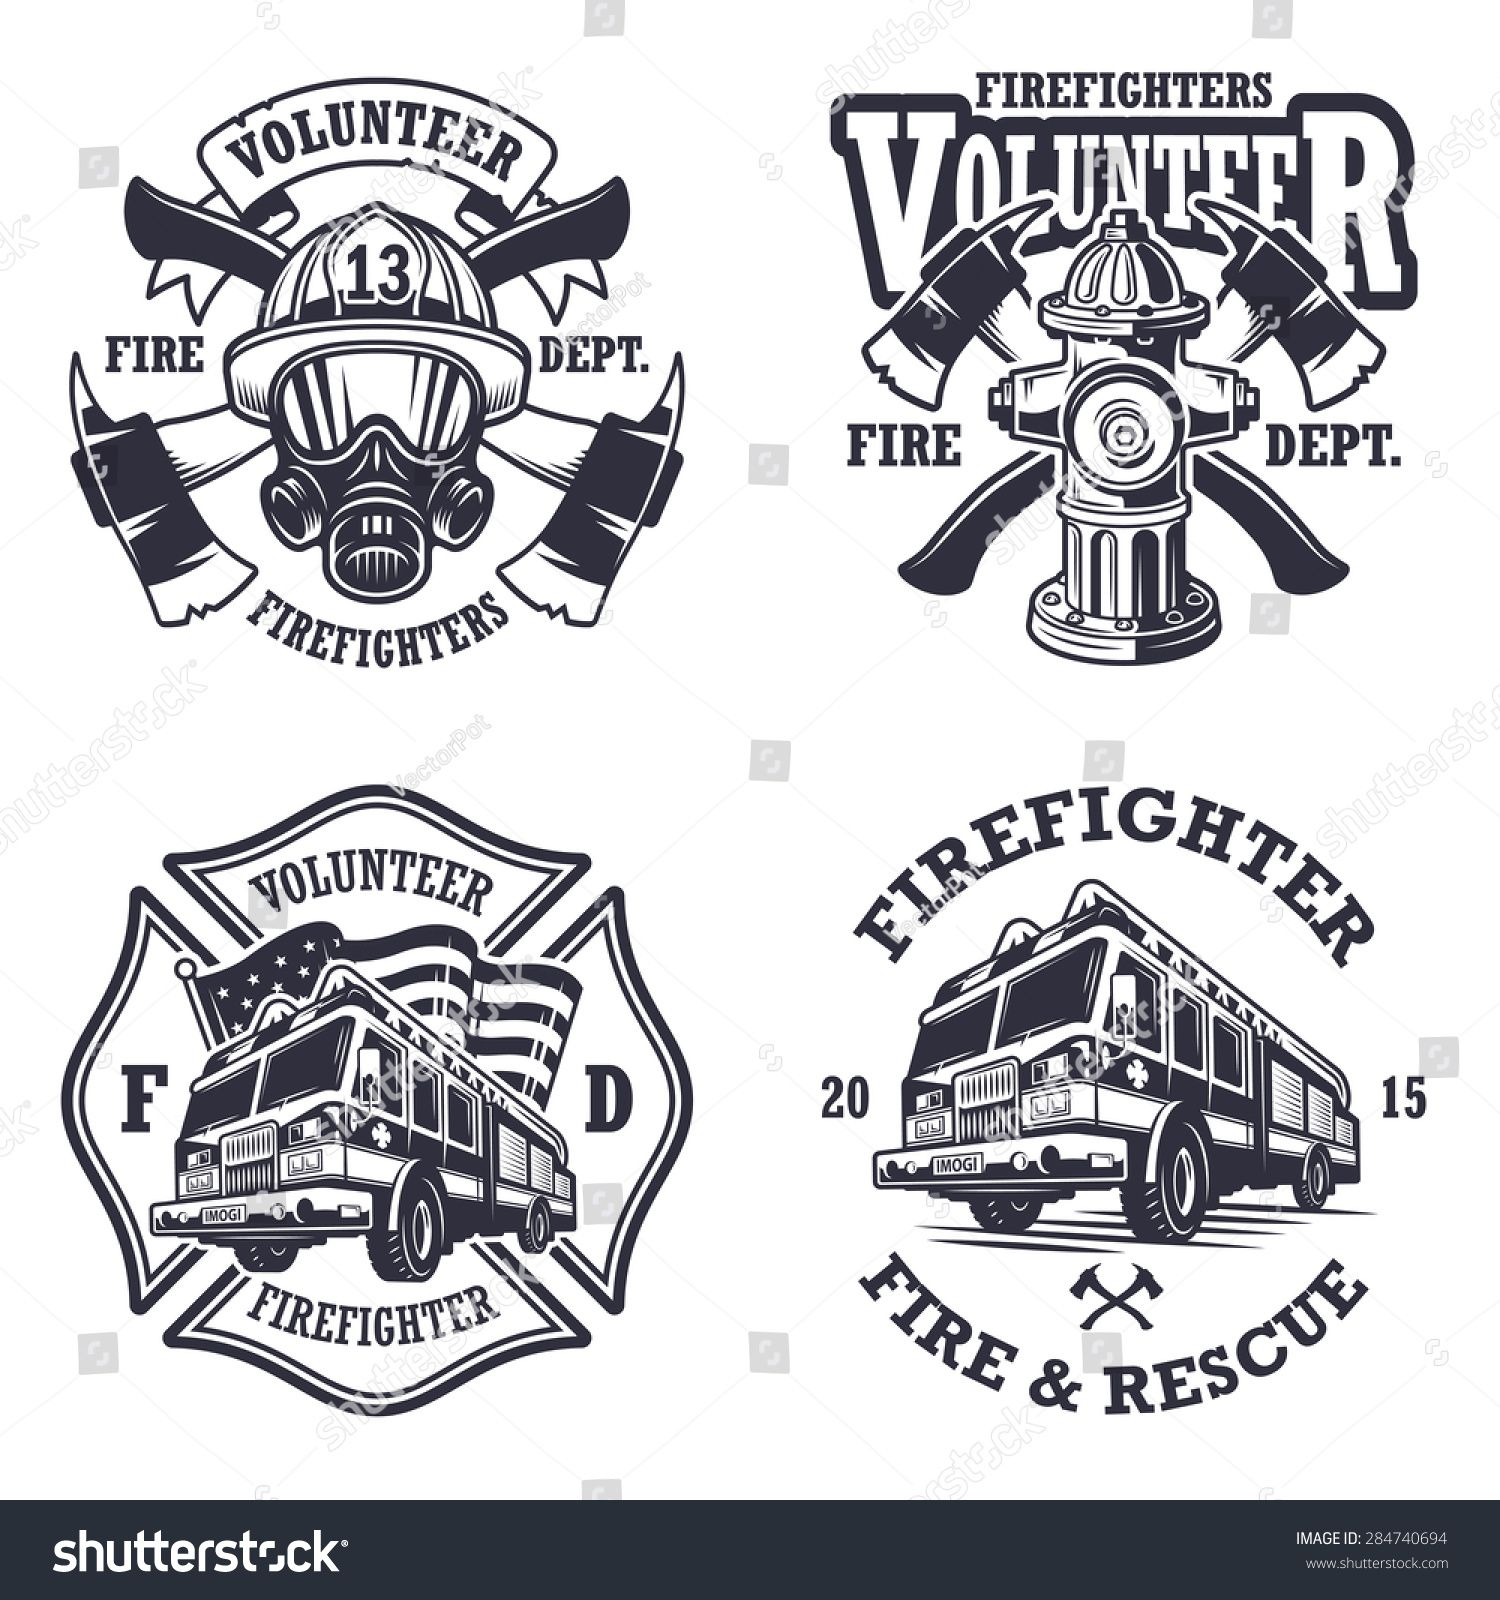 Set of firefighter emblems, labels, badges and logos on